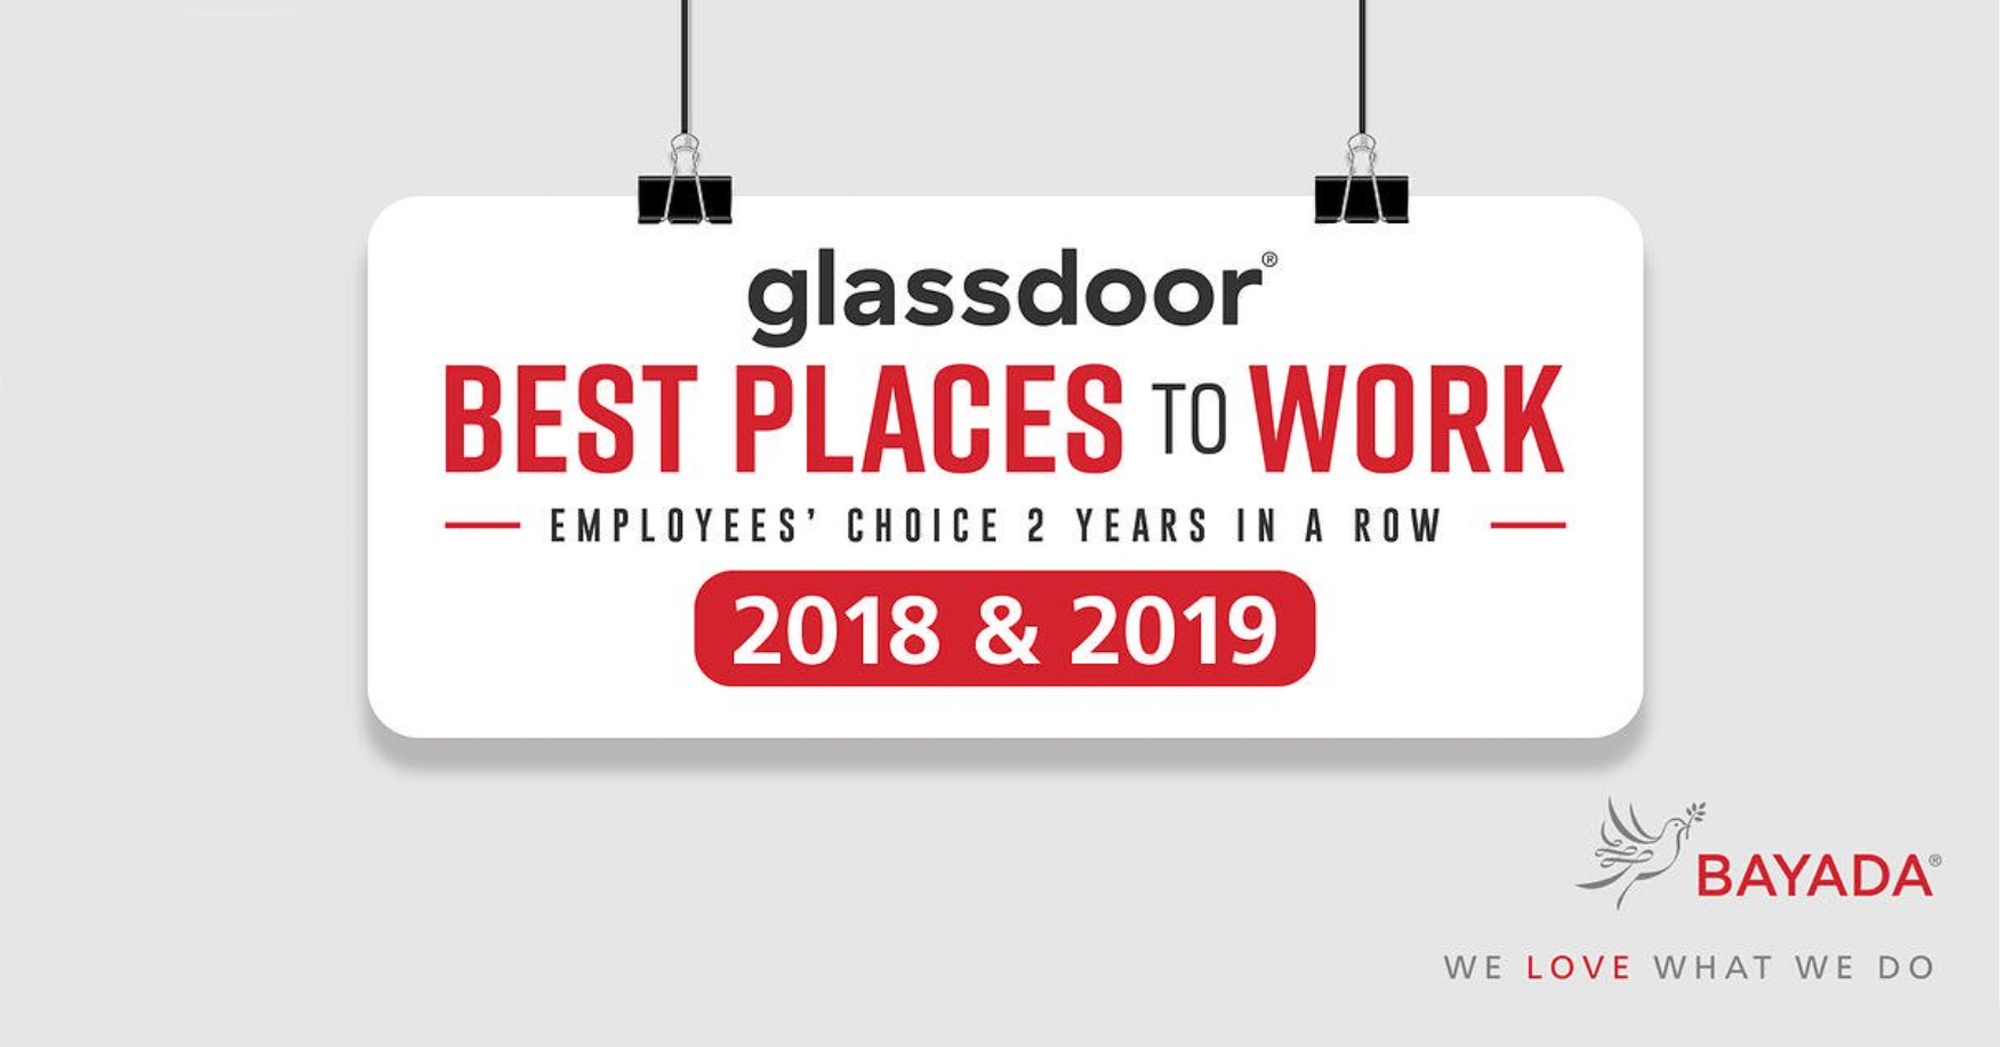 glassdoor-2019 news blog